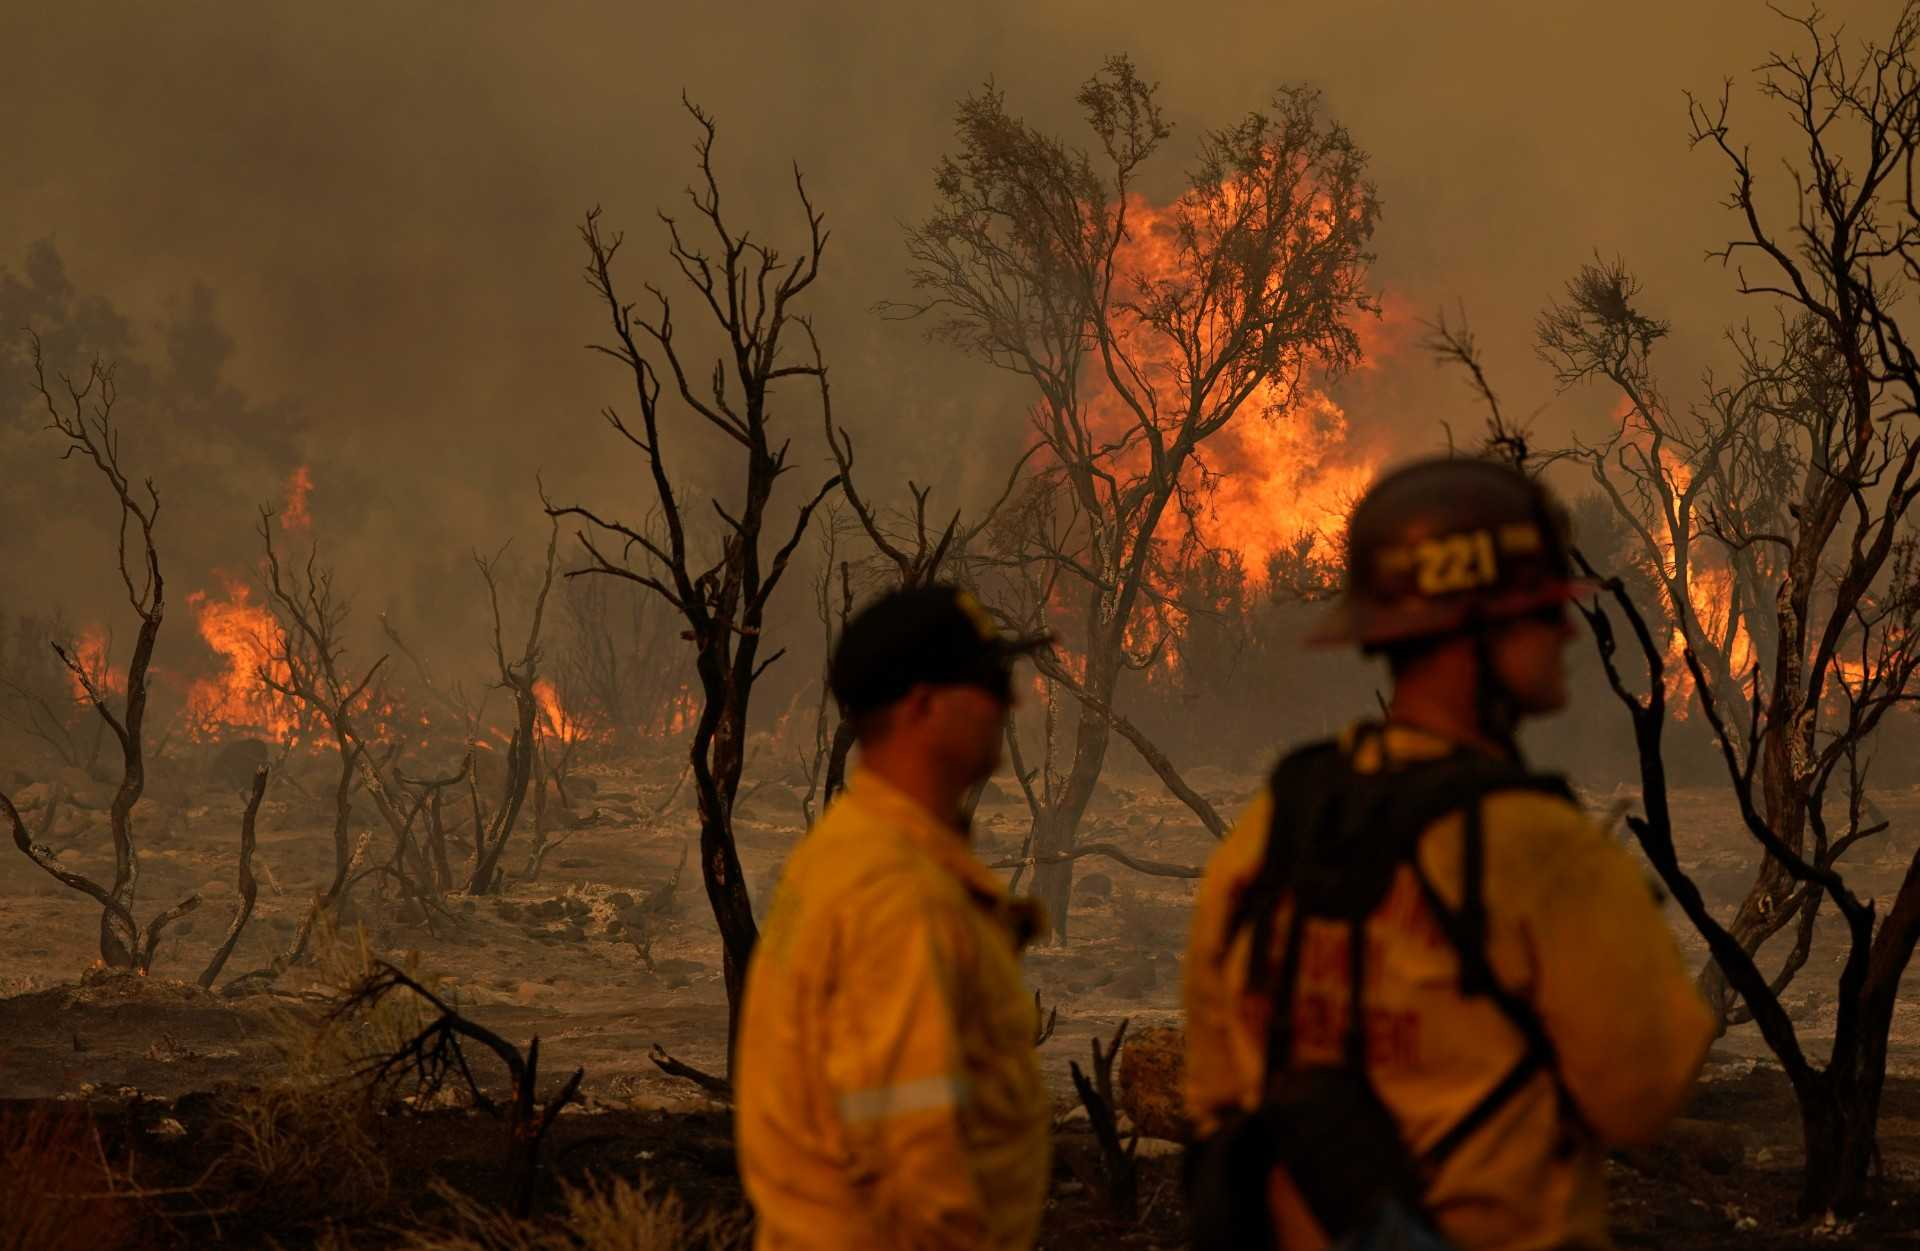 Desert communities told to evacuate as winds stoke California flames